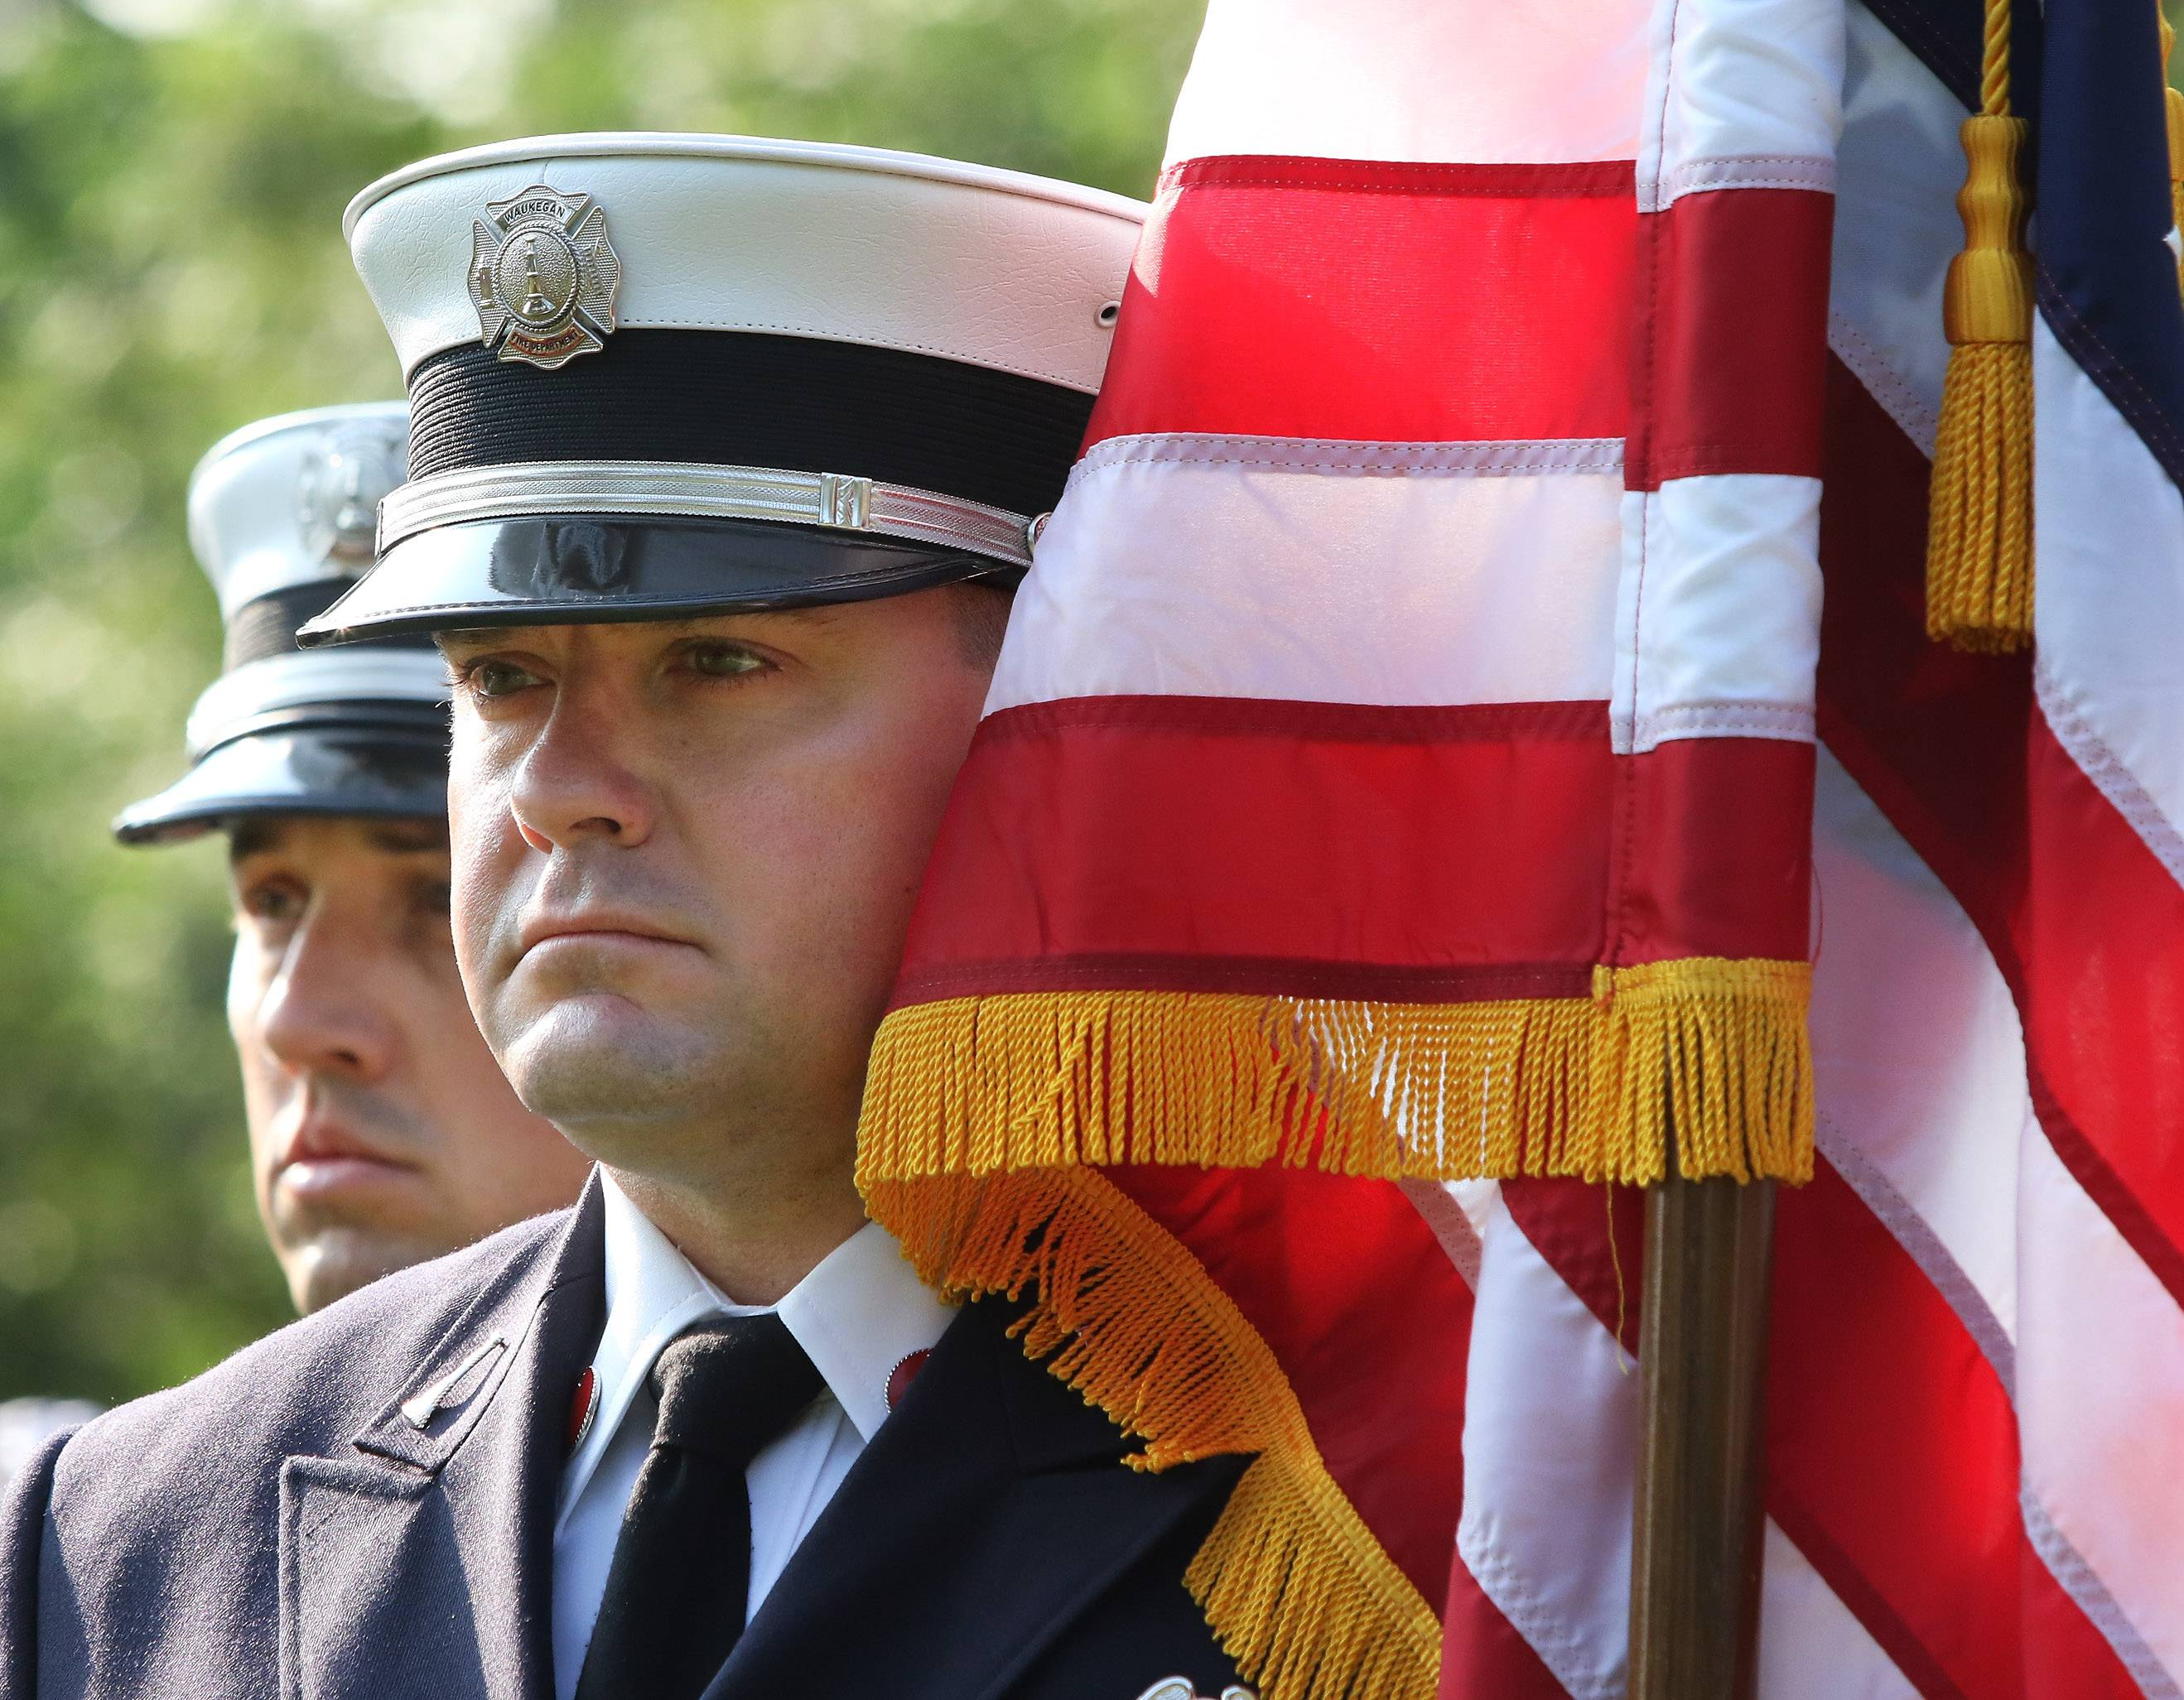 Waukegan Fire Dept. Lt. Jeremy Brown, right, and Lt. John Carrier listen to the bells ring during the 9/11 Remembrance Ceremony at Fireman's Memorial Park in Waukegan on Monday. The Waukegan Fire Department hosted the event that recognized firefighters and police officers lost on September 11, 2001 terrorist attack.